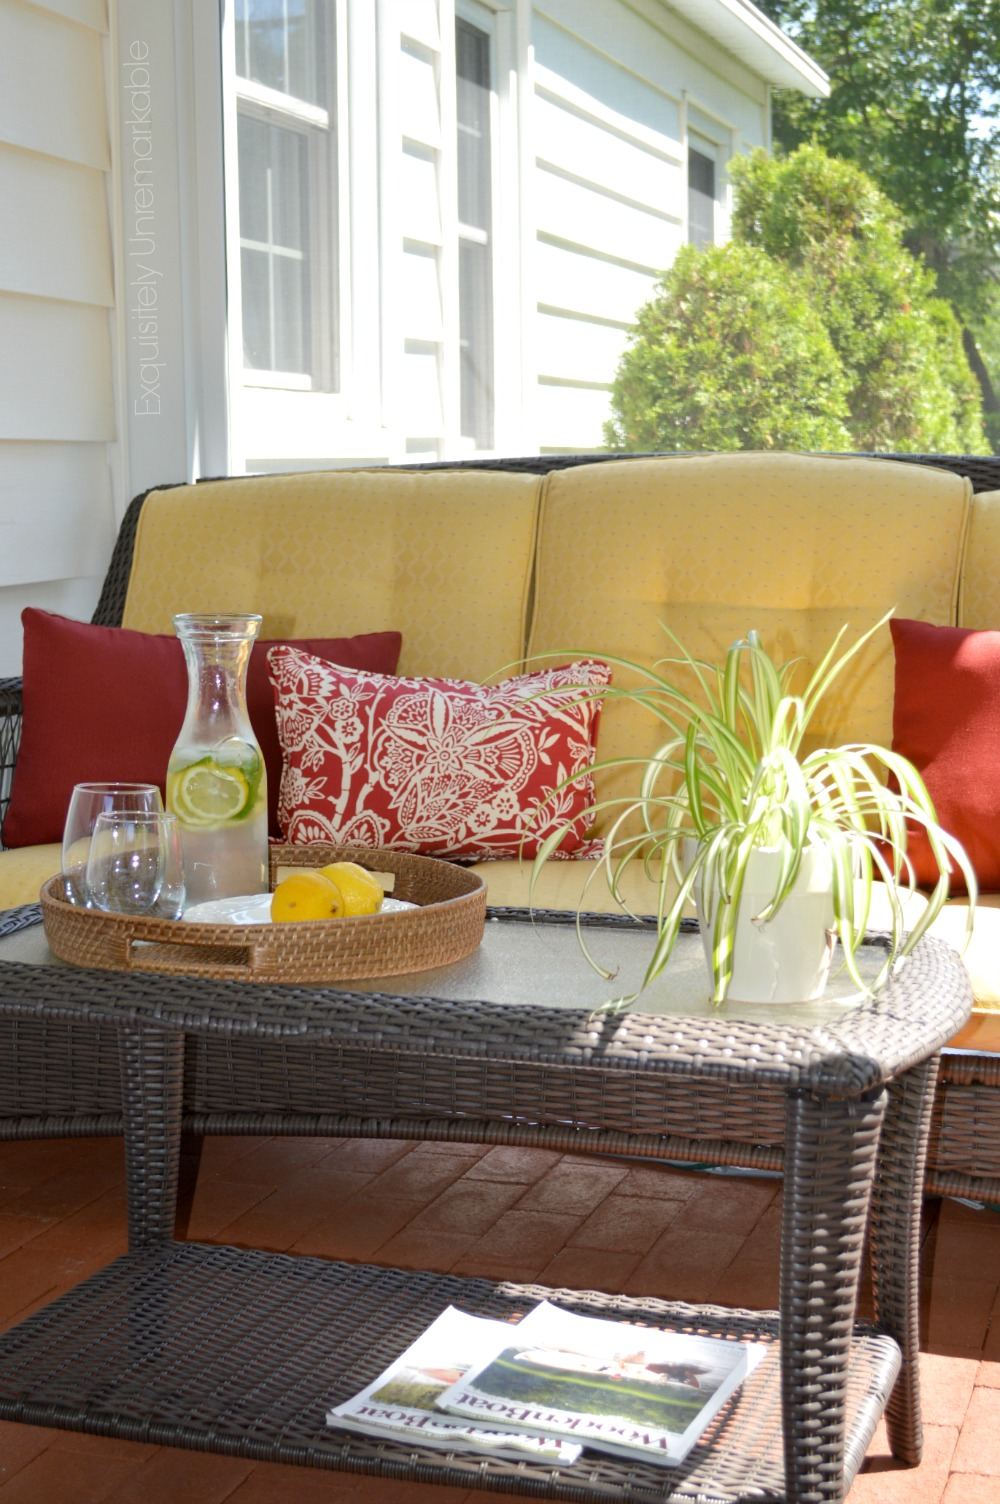 Decorating With Pillows On The Porch